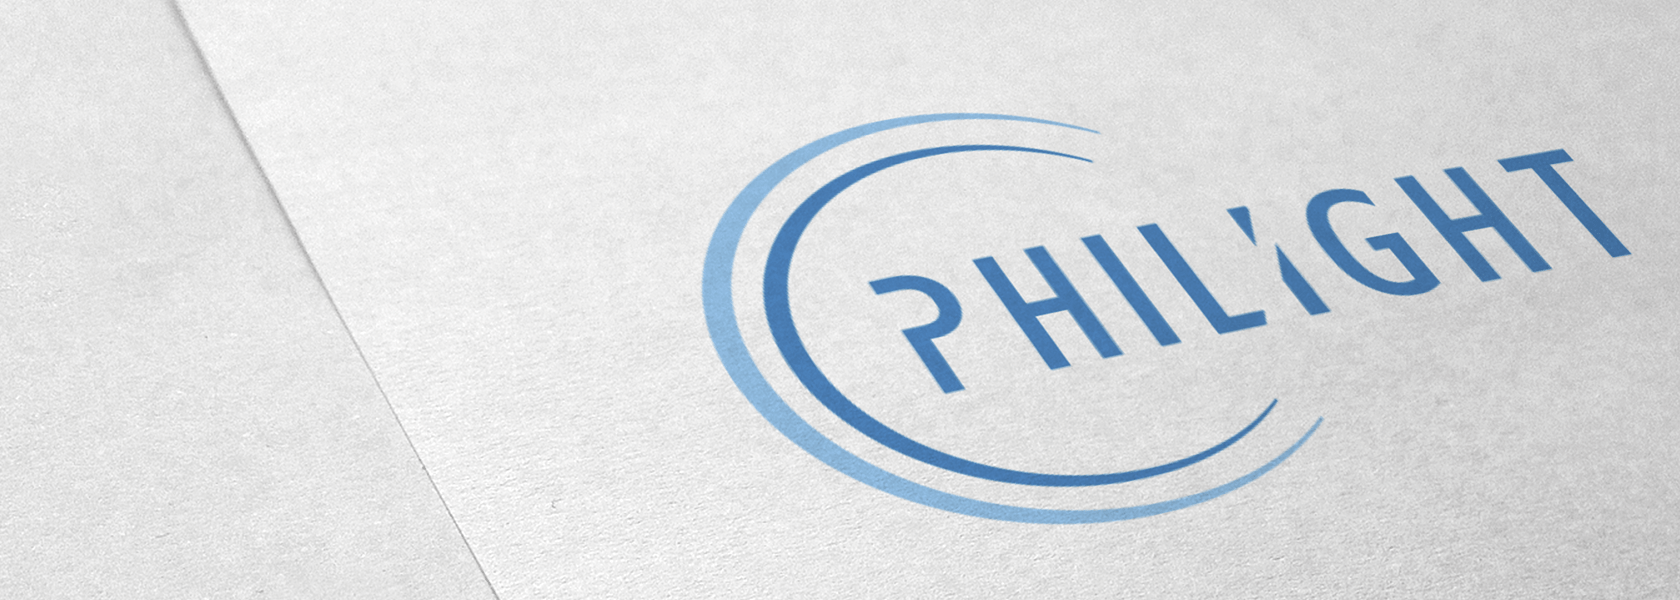 Visual identity for a distributor of Philips lighting.